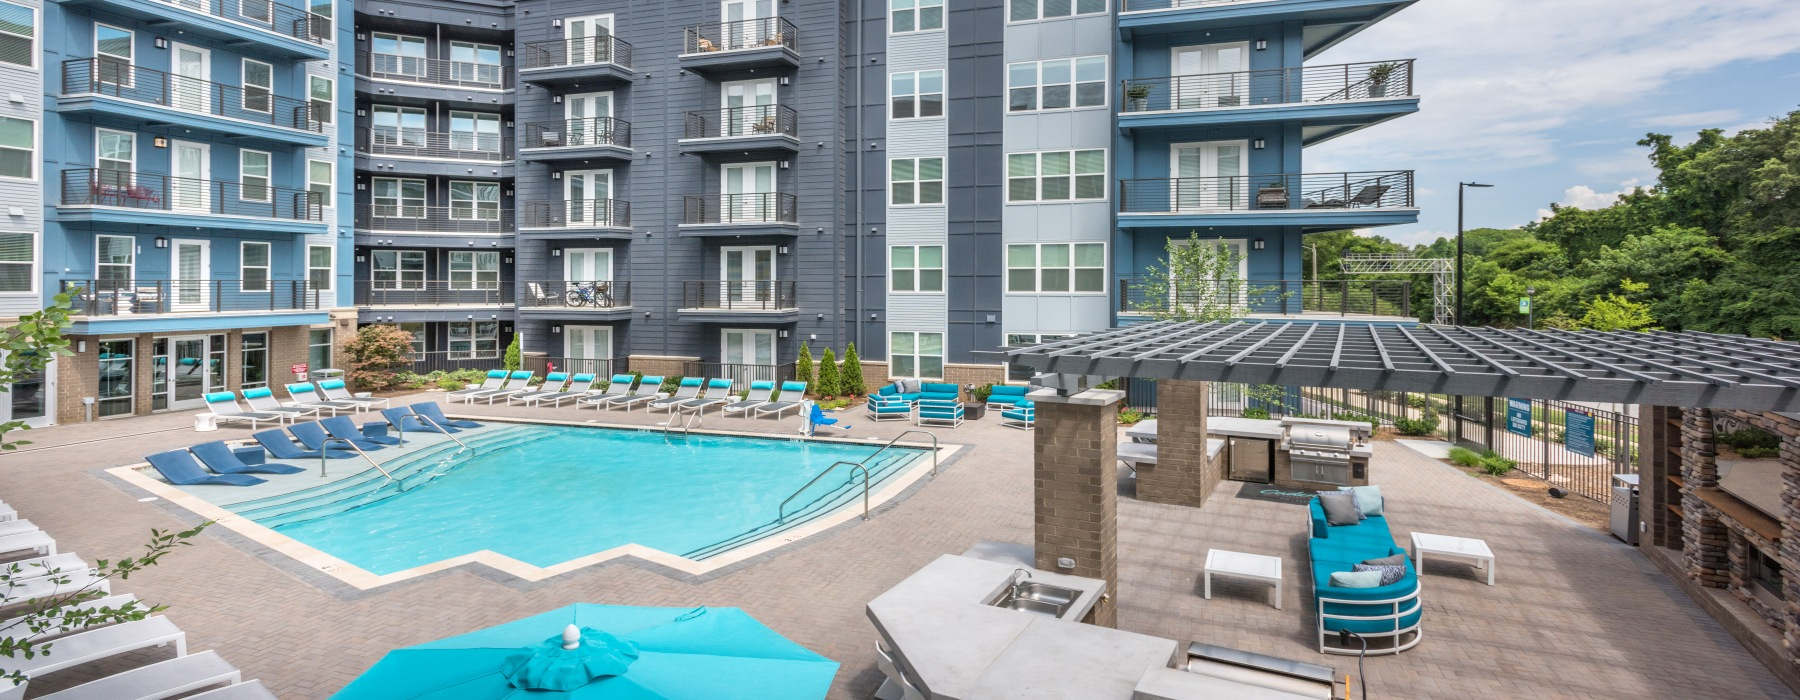 Pool at new Charlotte apartment